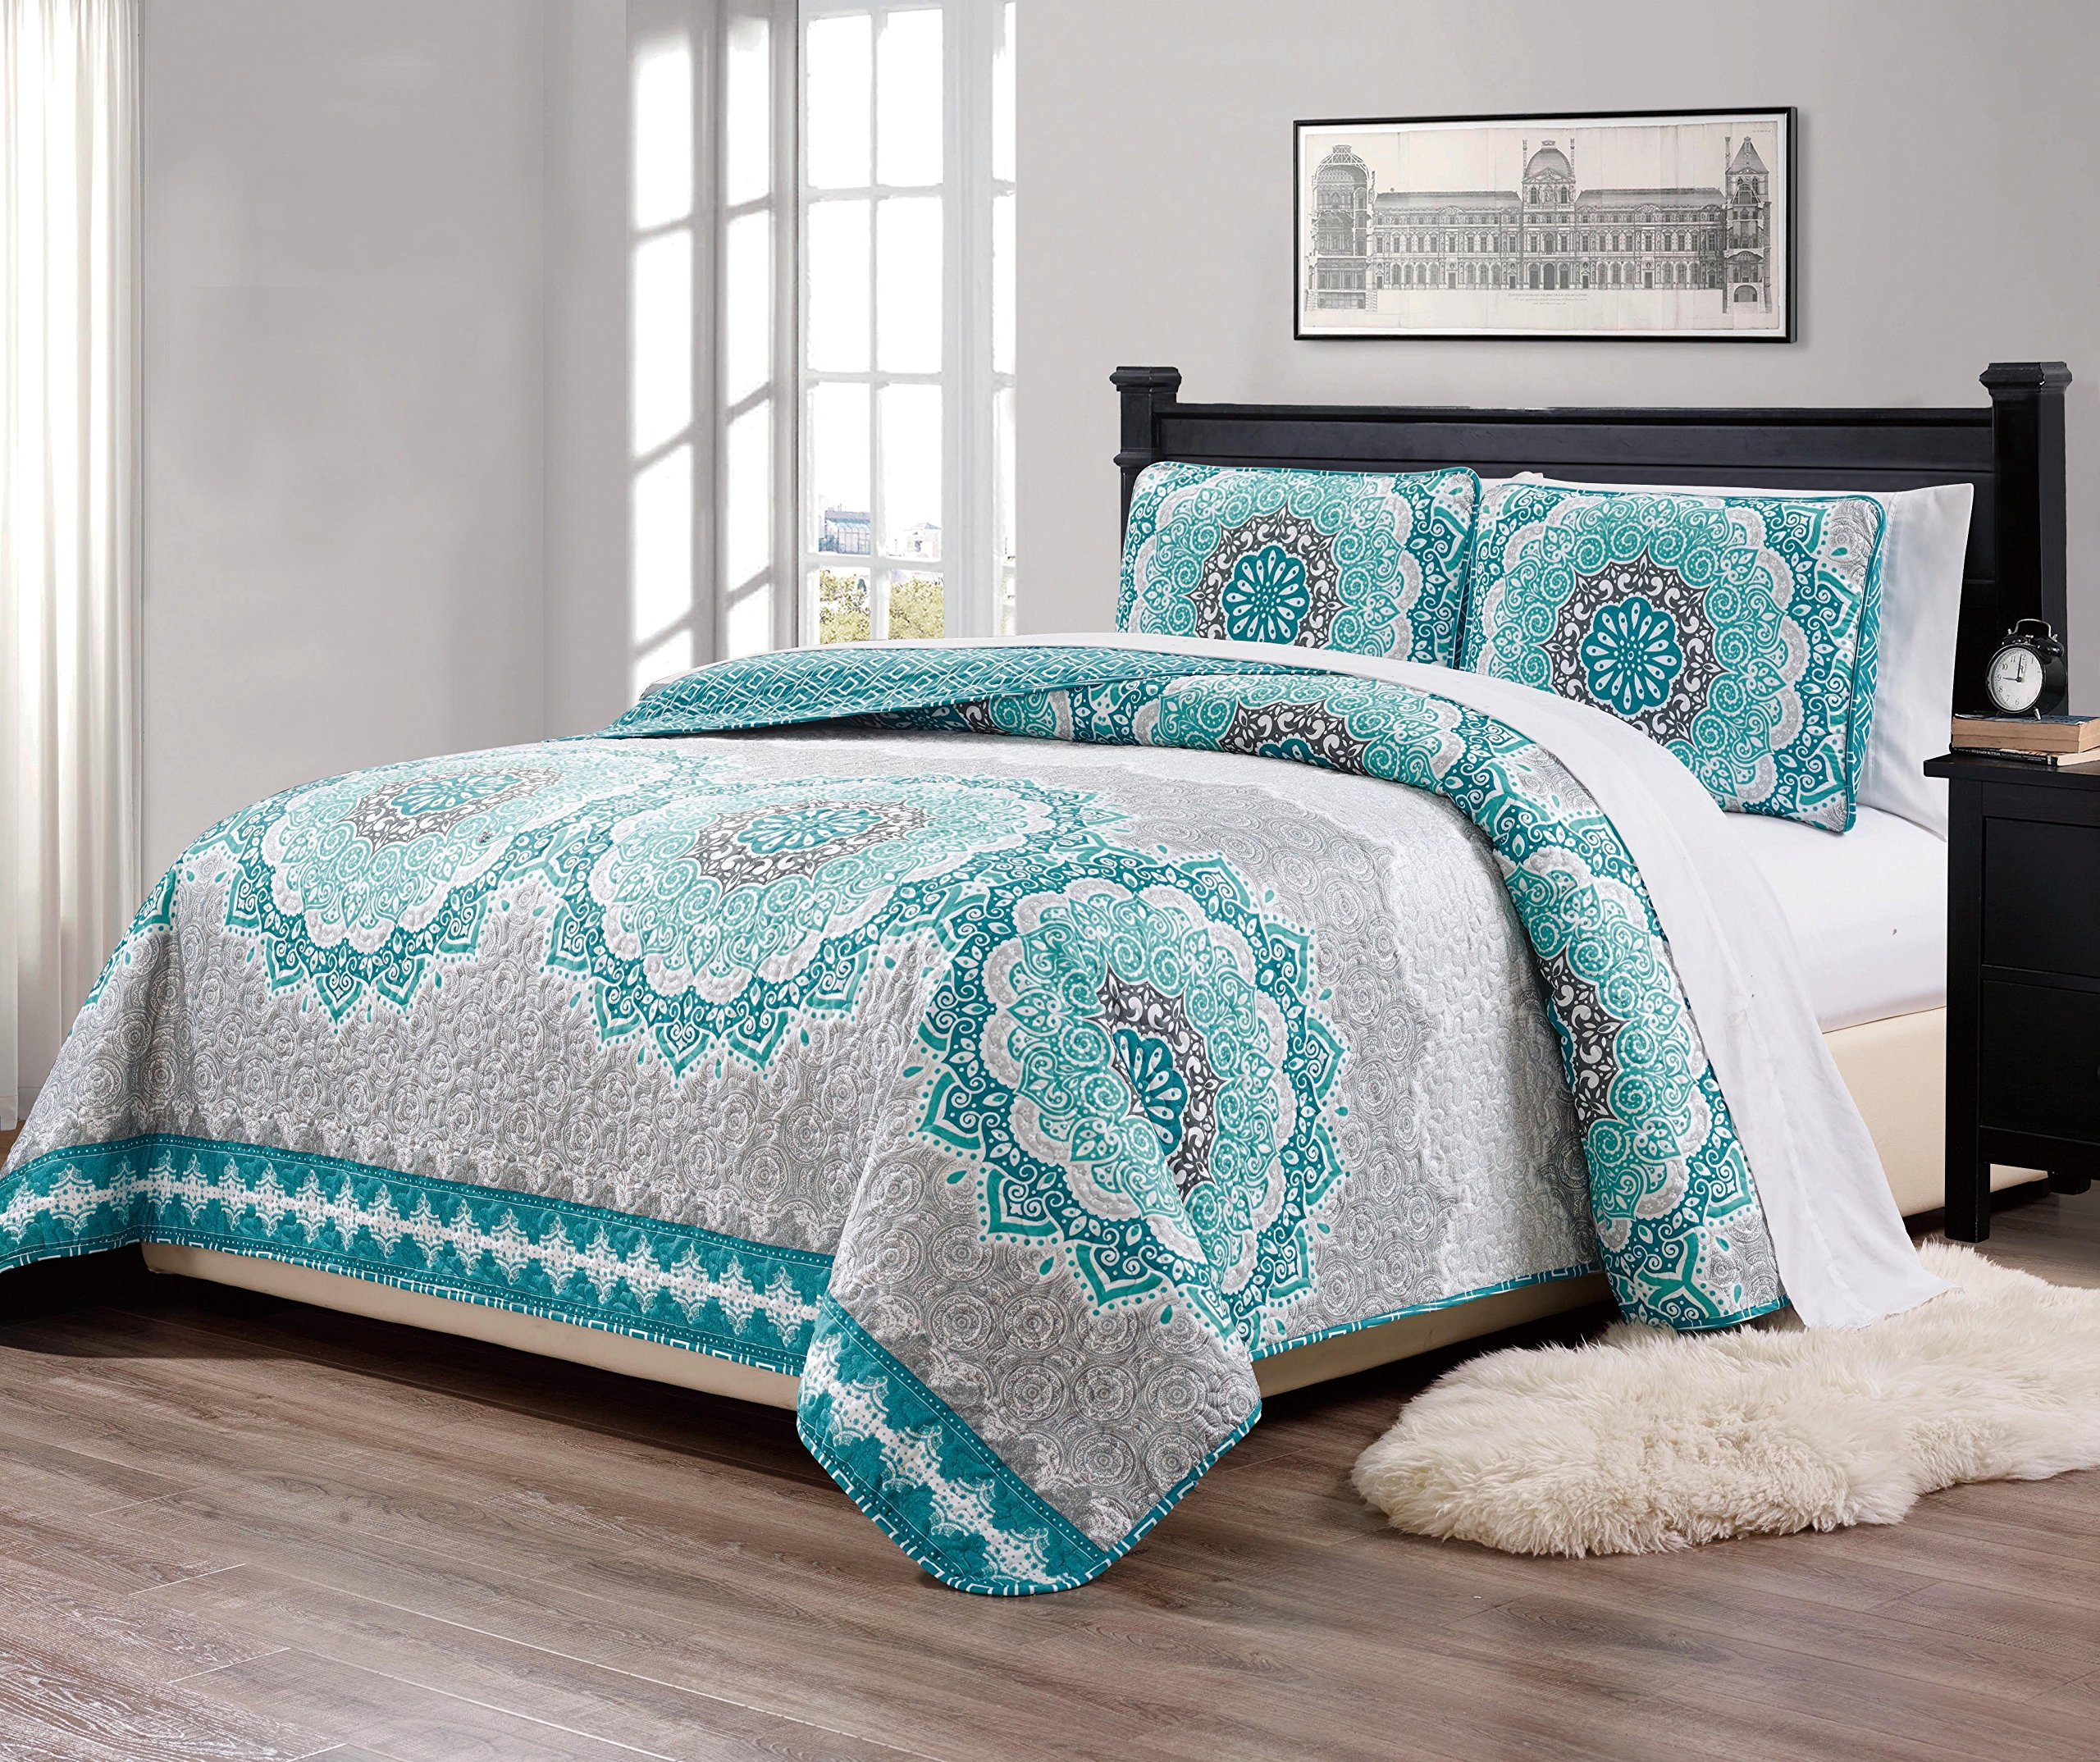 Teal Blue and Gold - California Cal King Size Set with Accent Pillows Grand Linen Luxury 7 Piece Bedding Sammy Pin Tuck Comforter Set in Dark Grey